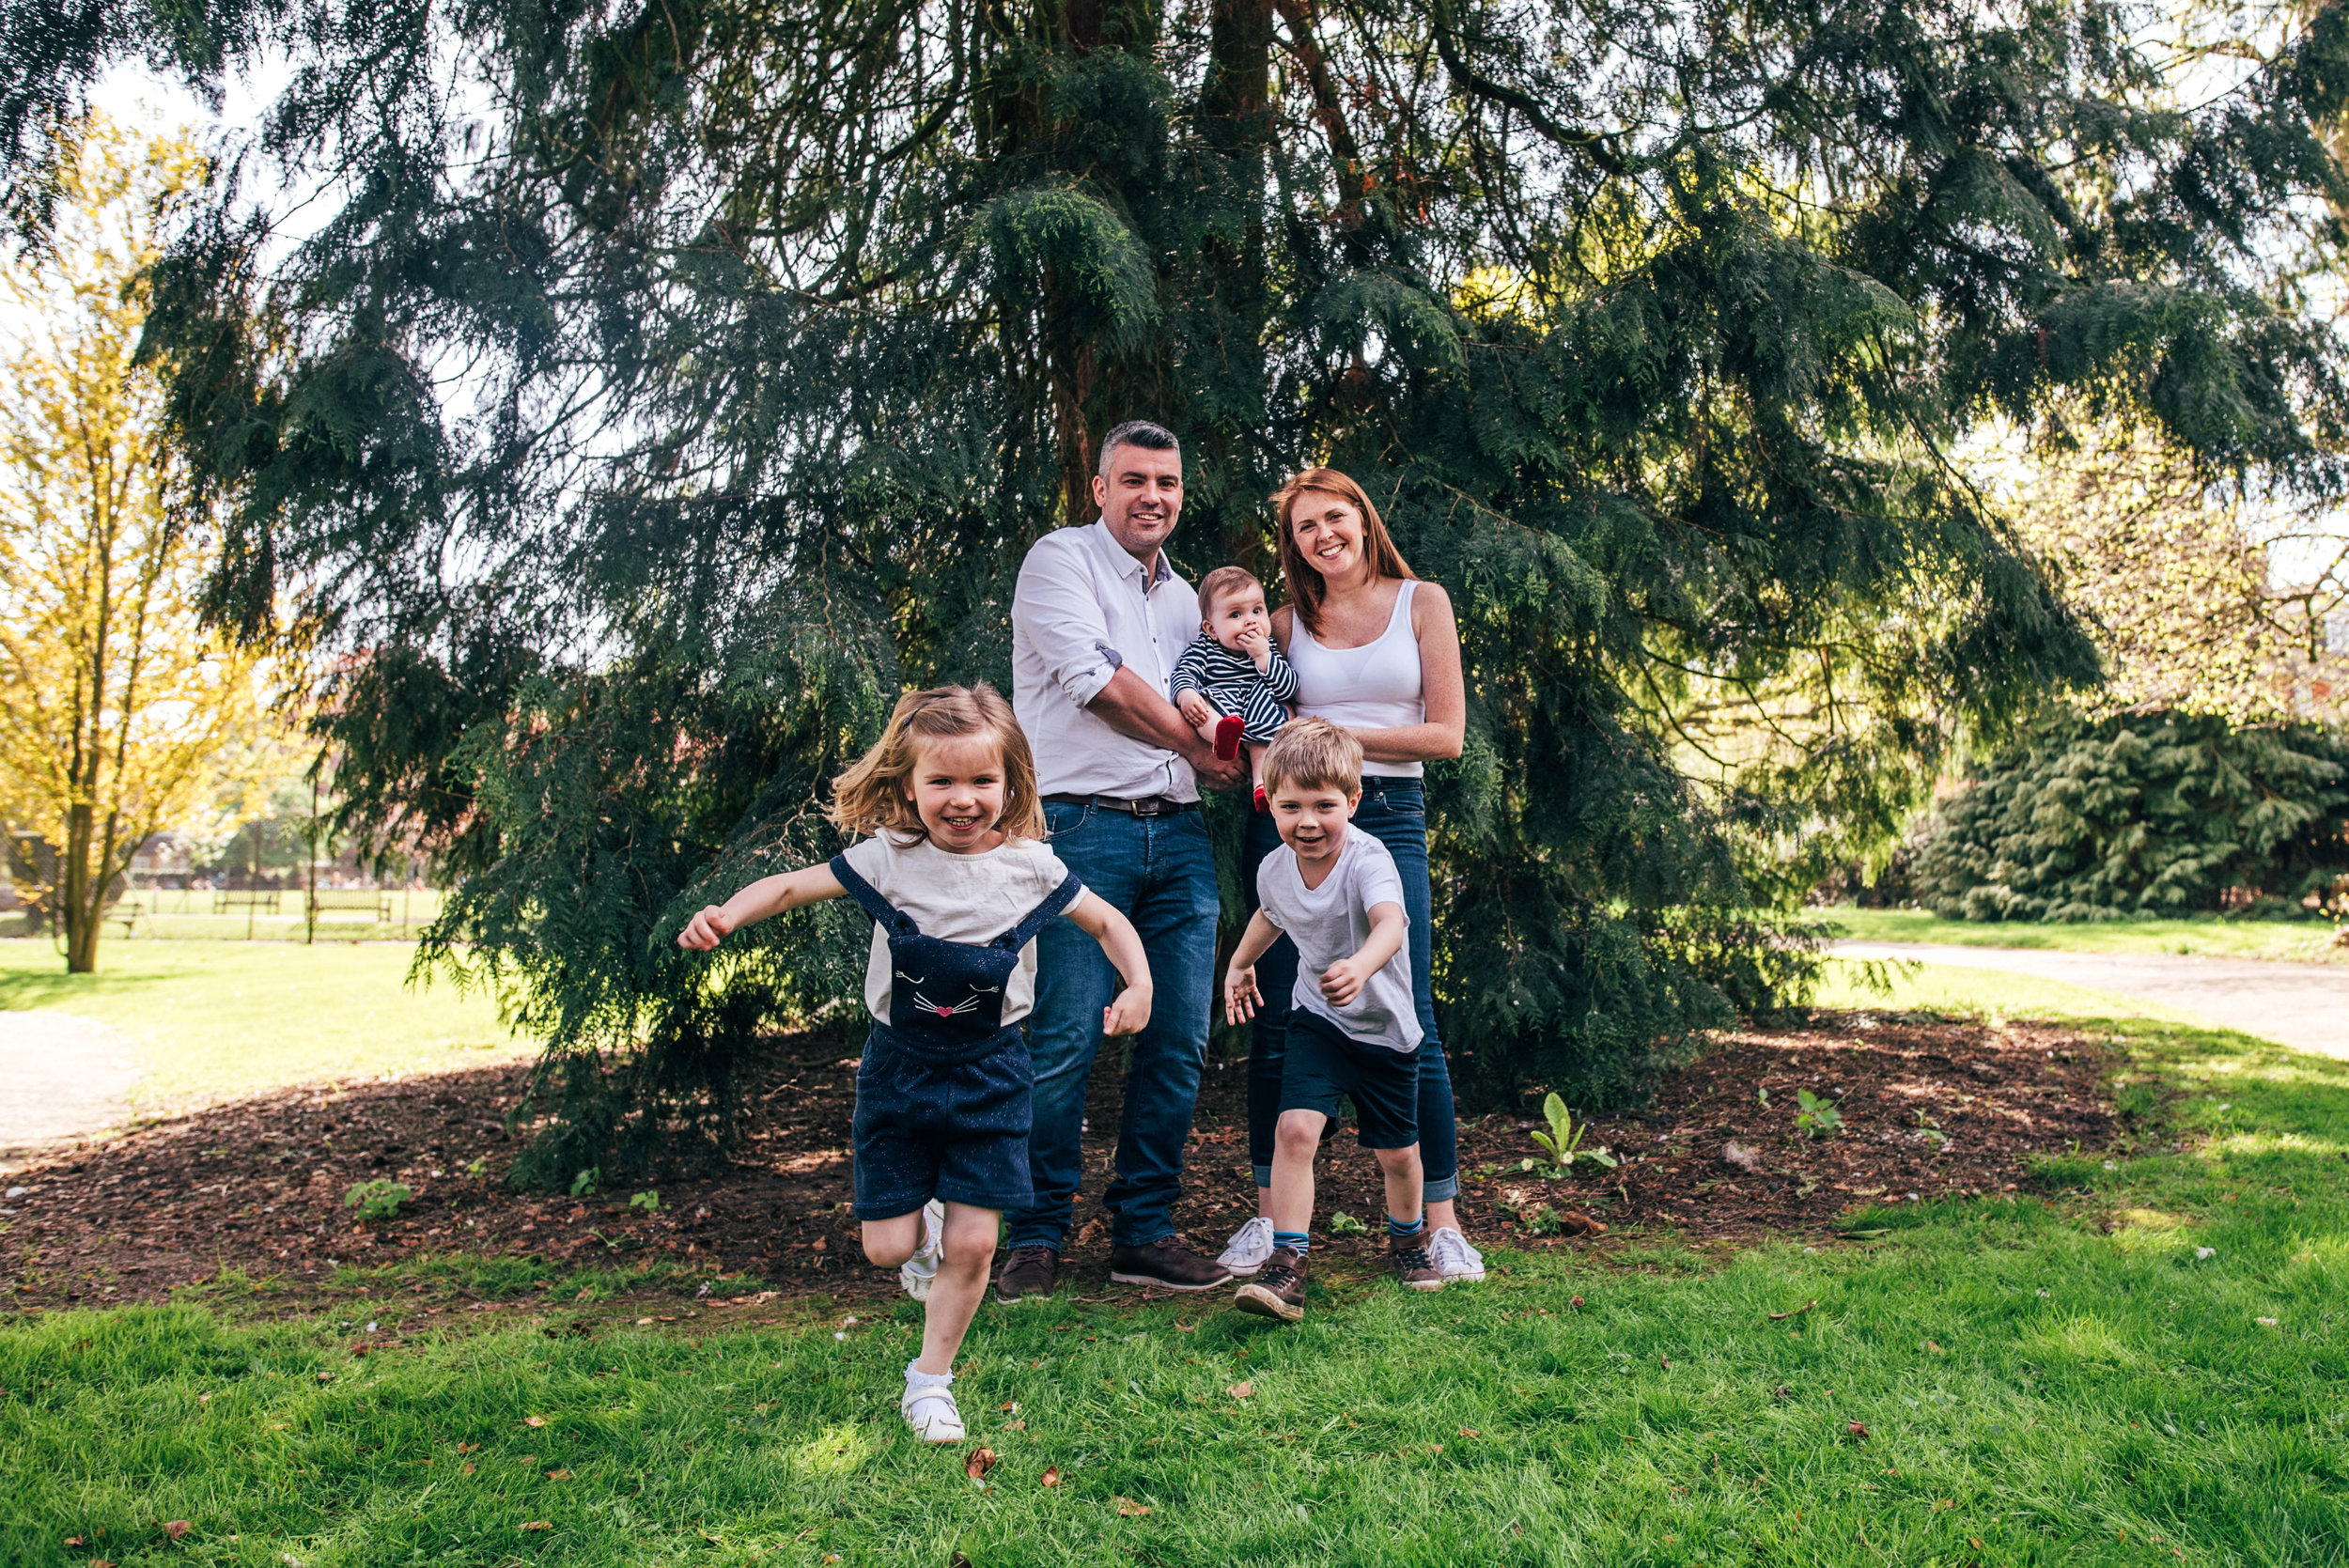 Family in park in Spring Essex & London Documentary Family Photographer Lifestyle